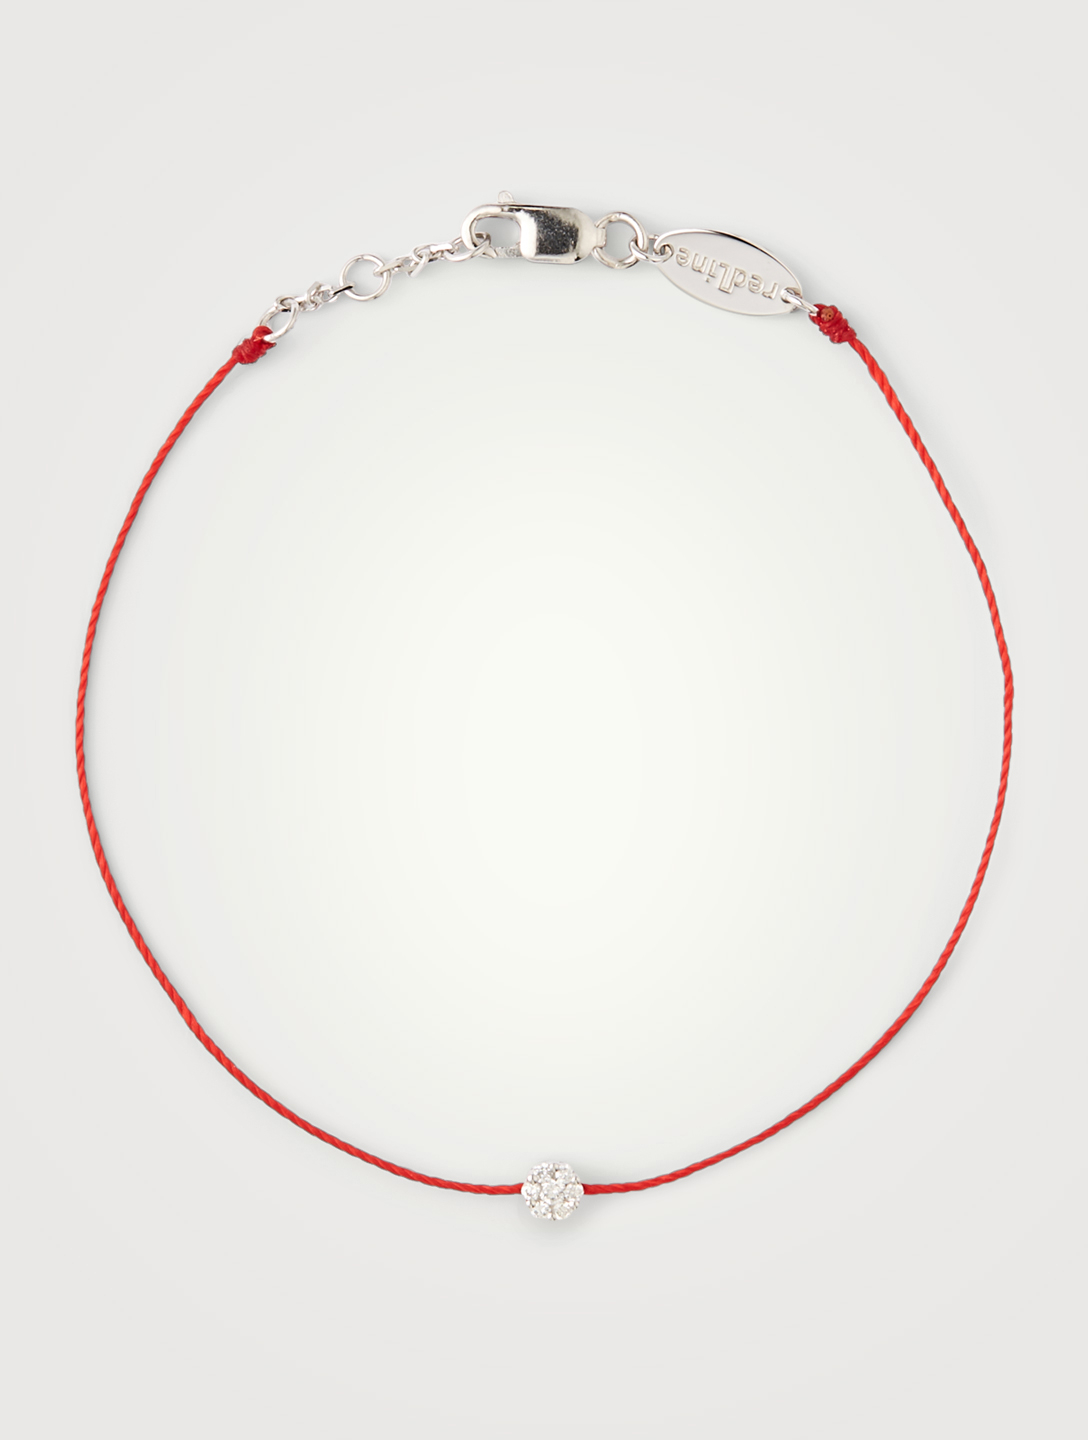 REDLINE Bracelet fil Illusion en or blanc 18 ct avec diamants Femmes Rouge